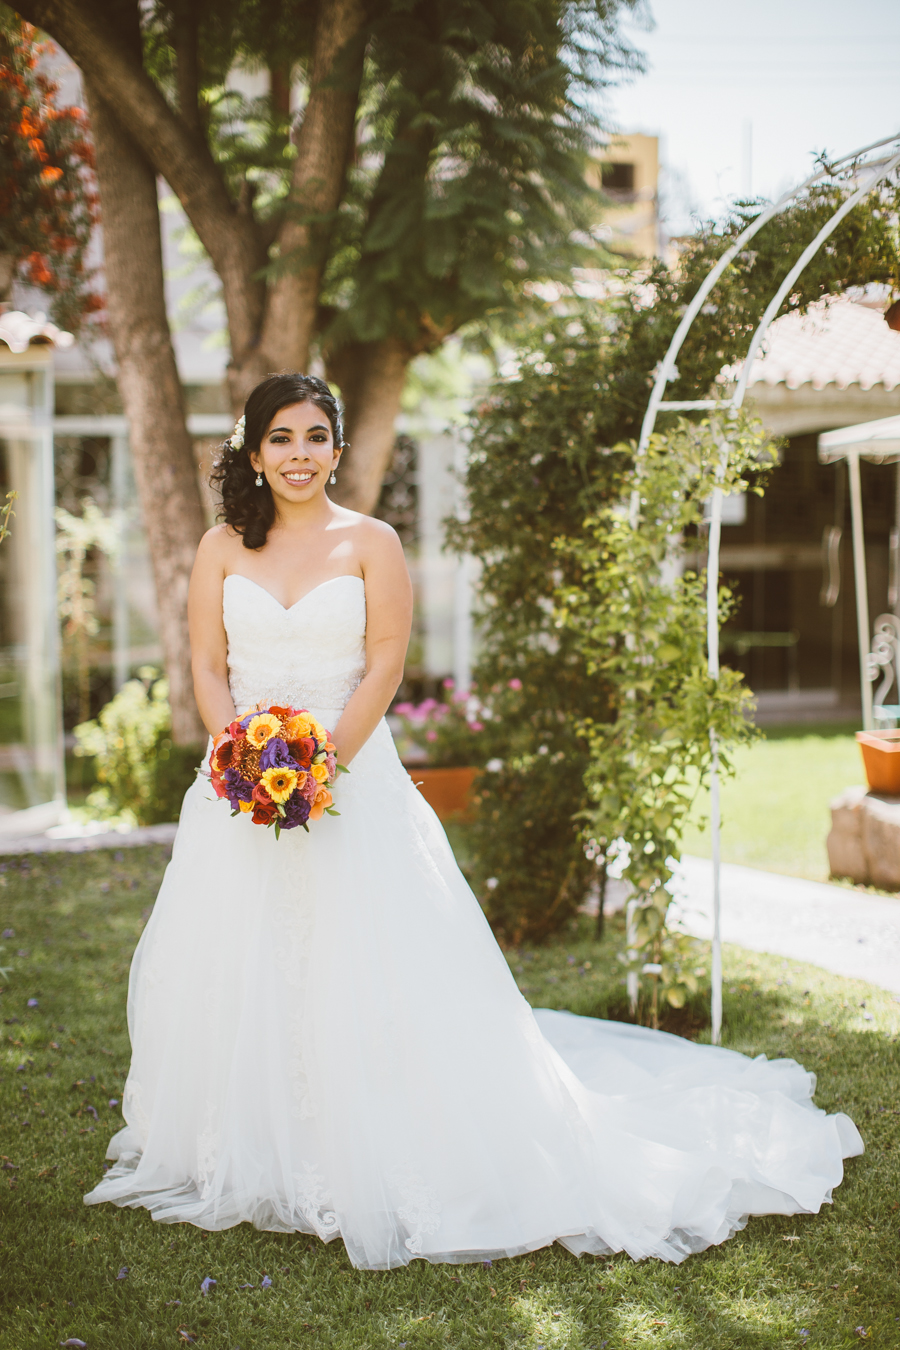 Hans and Roxes   Destination Wedding Photographer based in Peru    love hansandroxes com   www hansandroxes com  51957713496  whatsapp Fotografo de bodas en Peru   Hans   Roxes. Peruvian Wedding Dress. Home Design Ideas